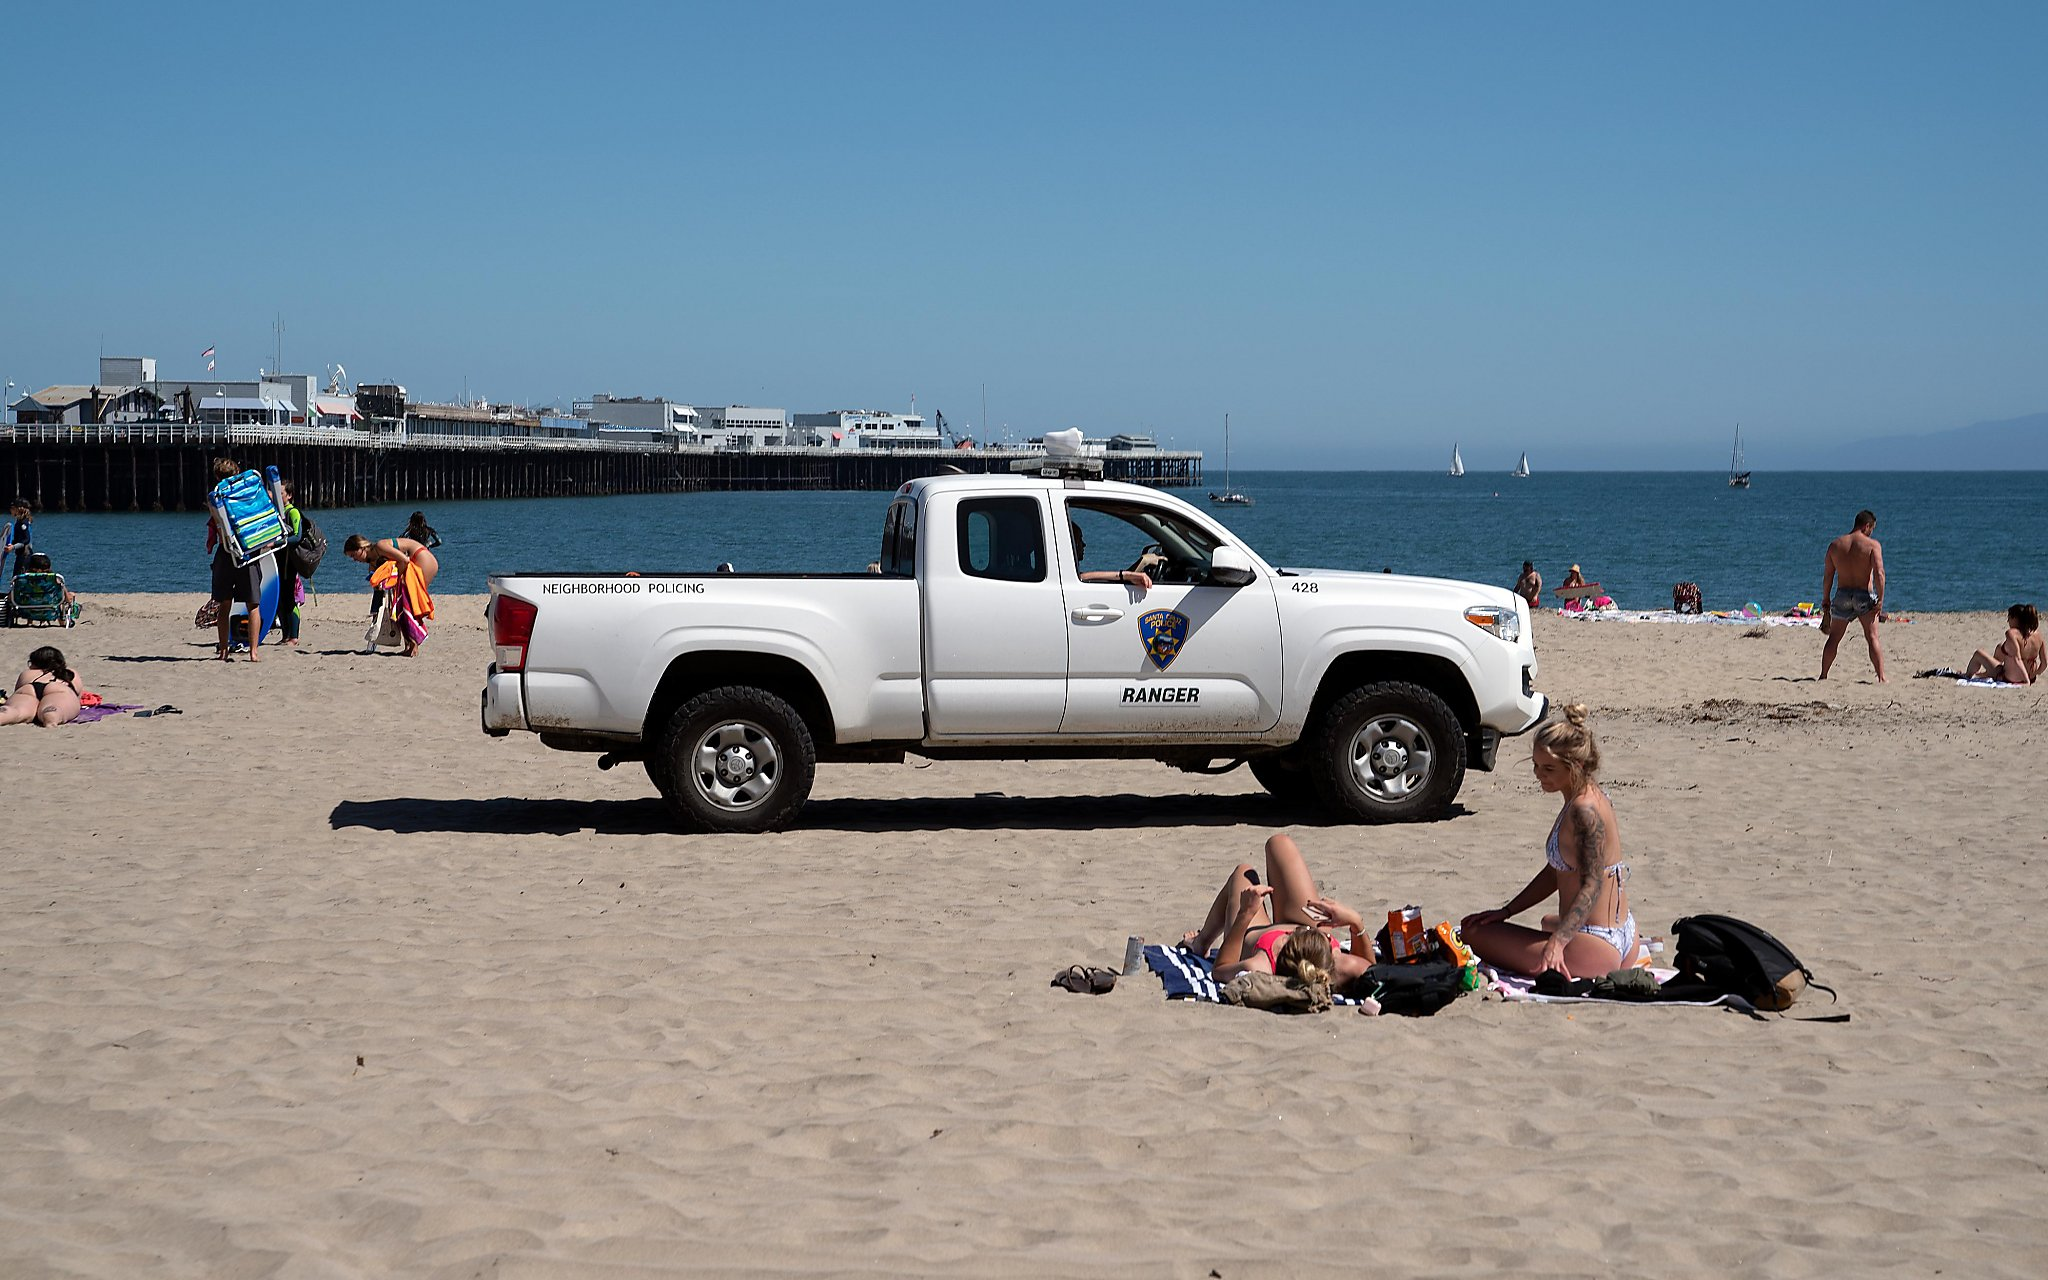 Santa Cruz reopens beaches after 2-month restriction